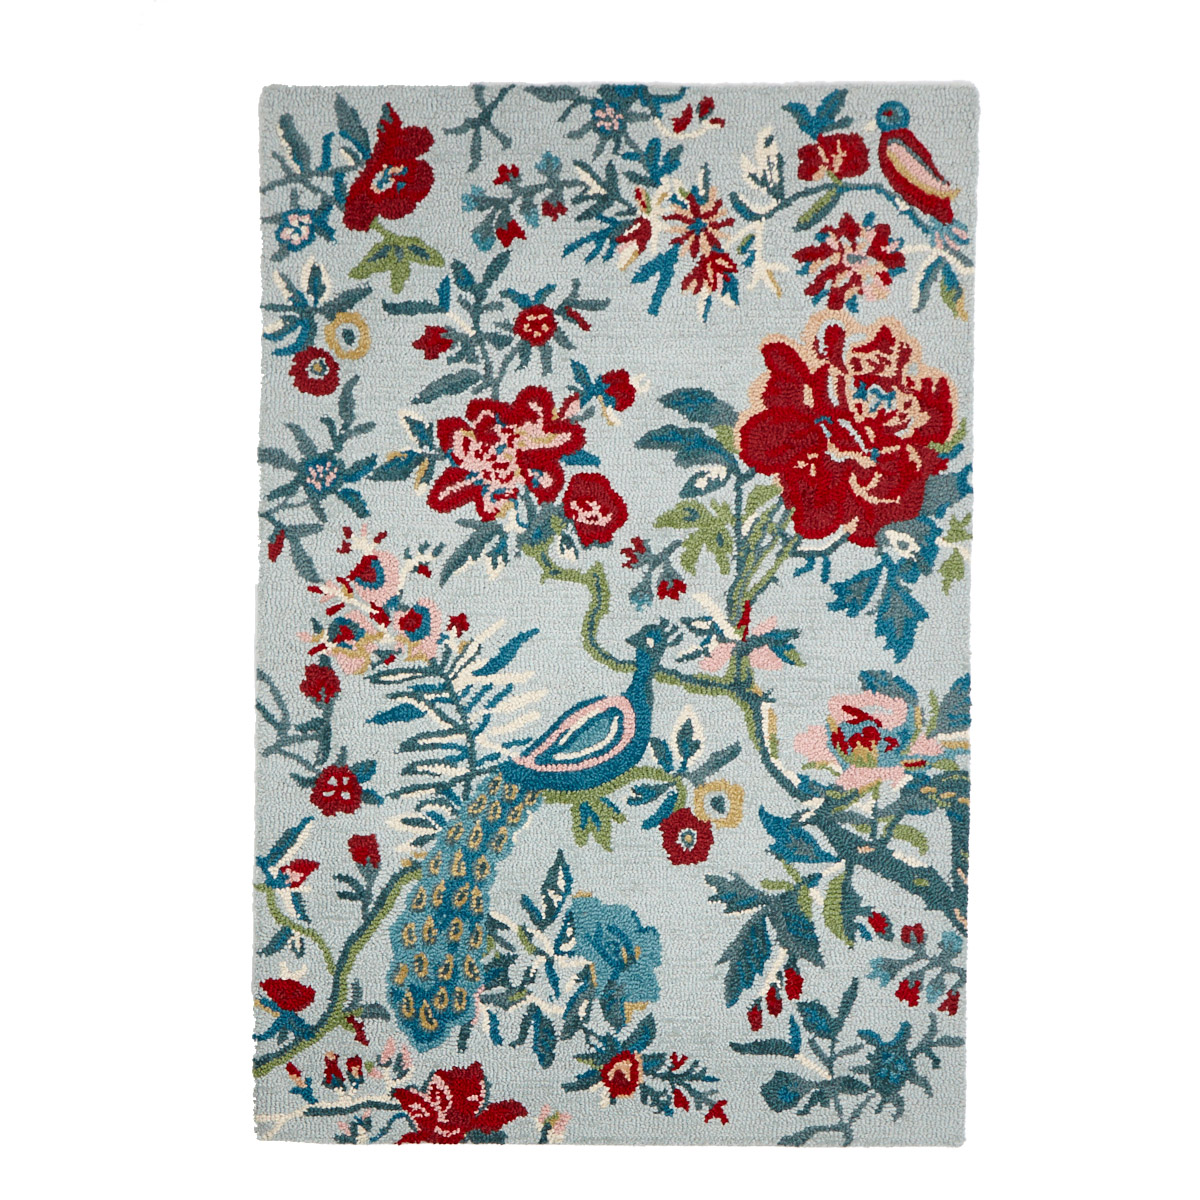 Multi Carolyn Donnelly Eclectic Peacock Rug